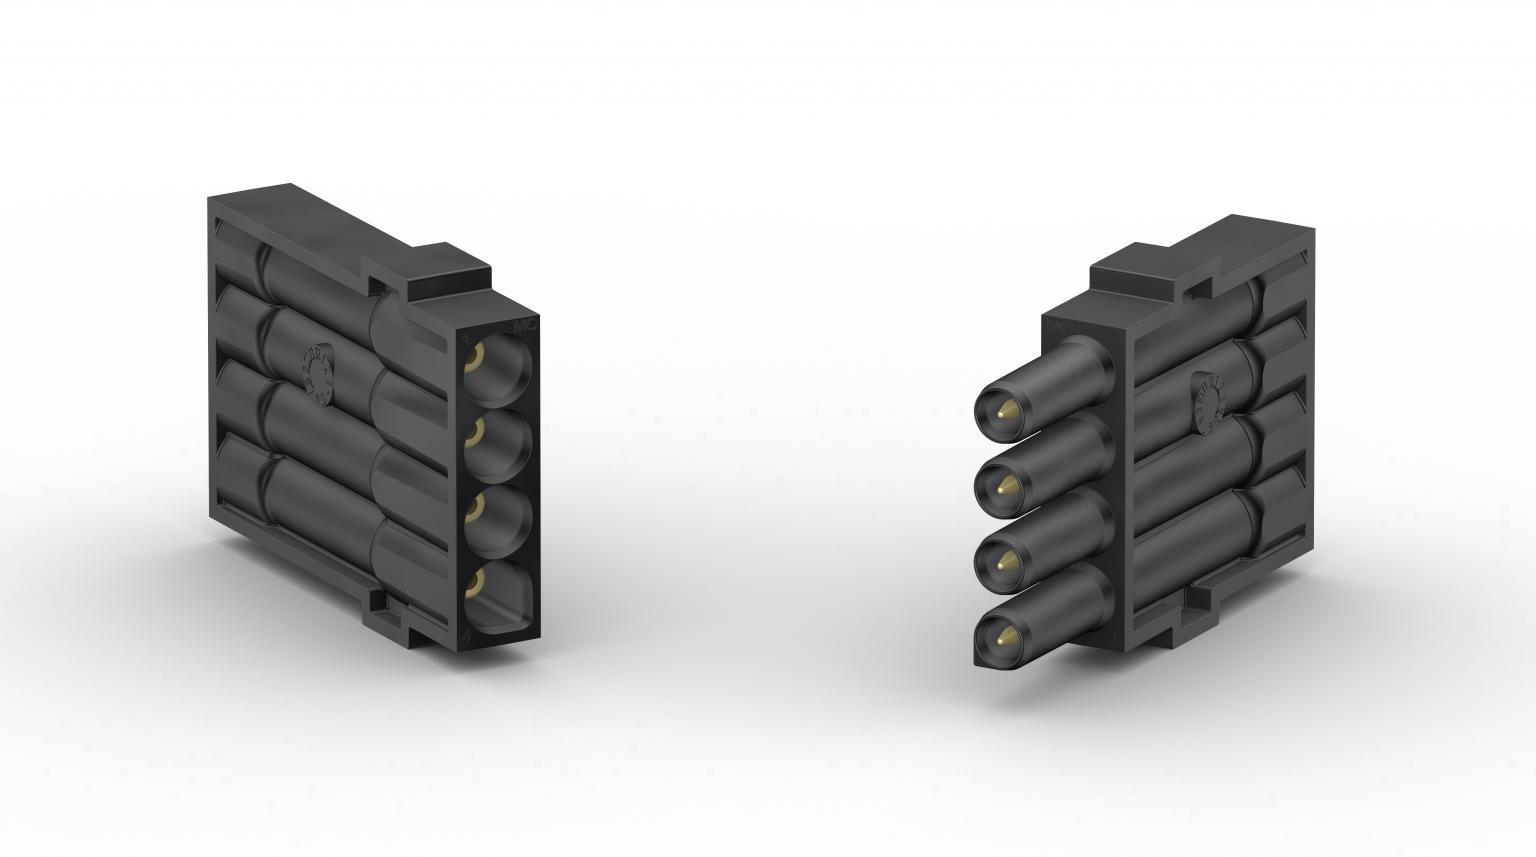 The socket (left) and plug (right) versions of the new Multilam flexo ML-CUX